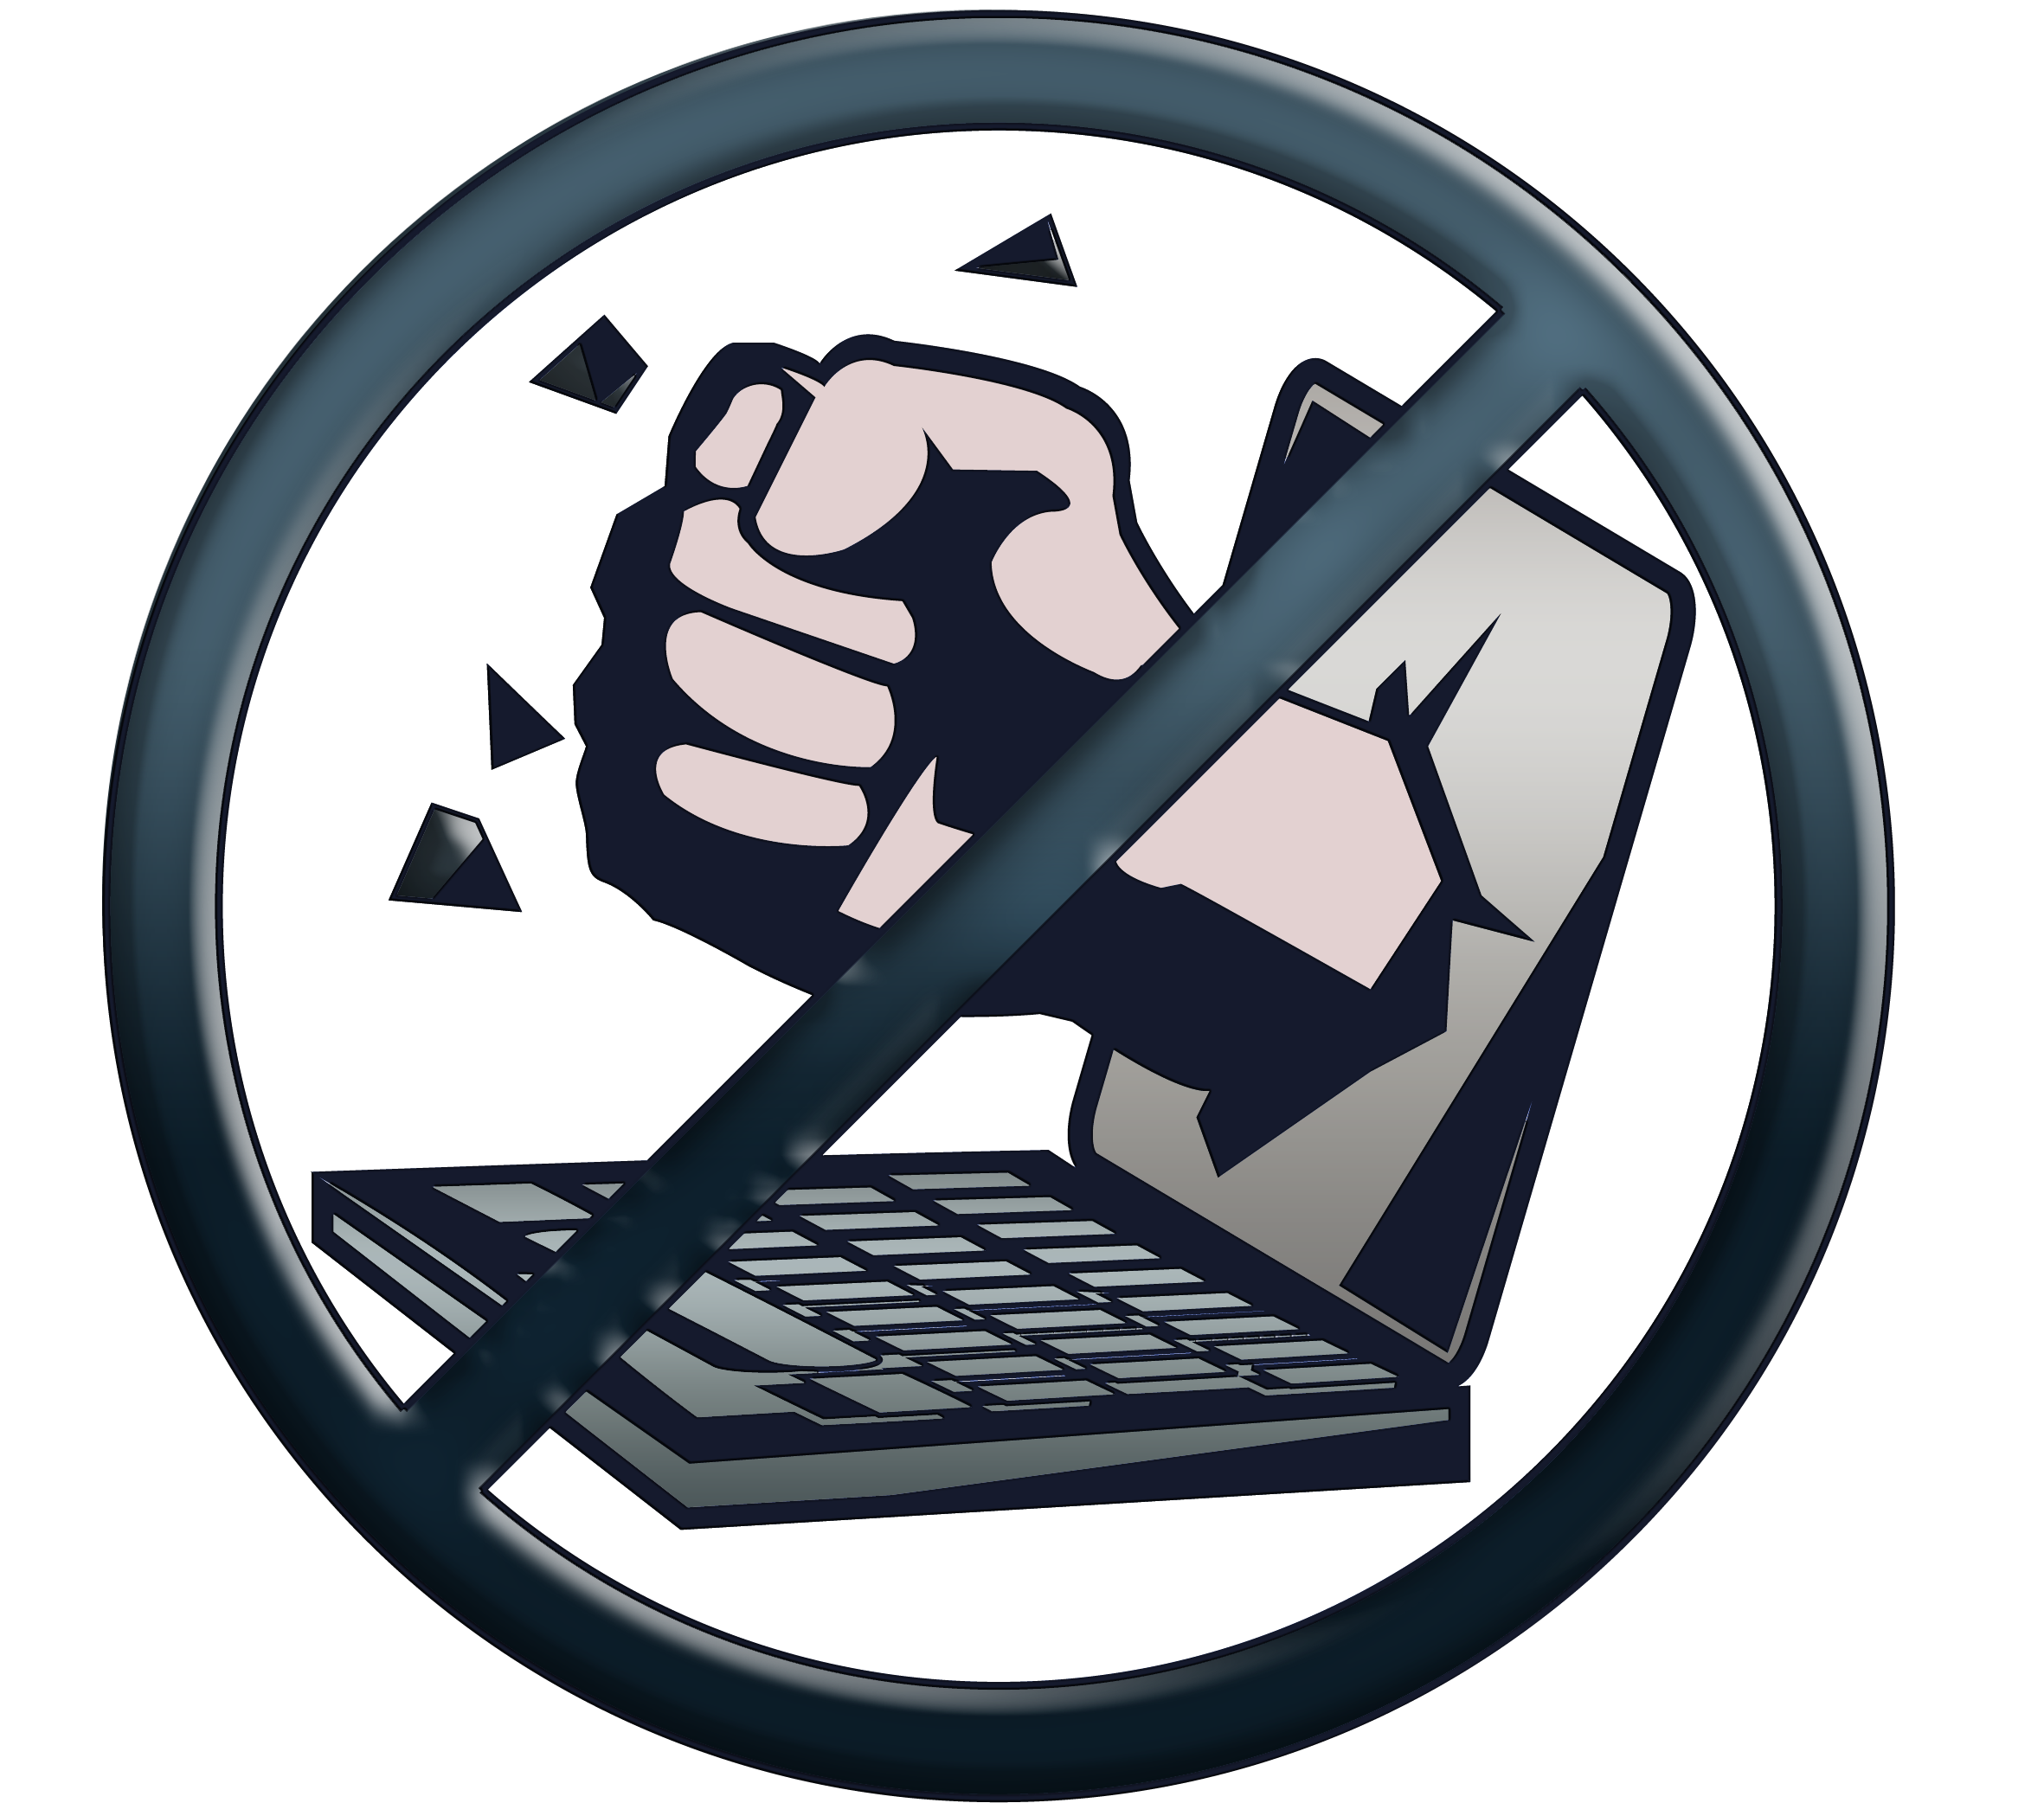 Anti Cyber Bullying Clipart.